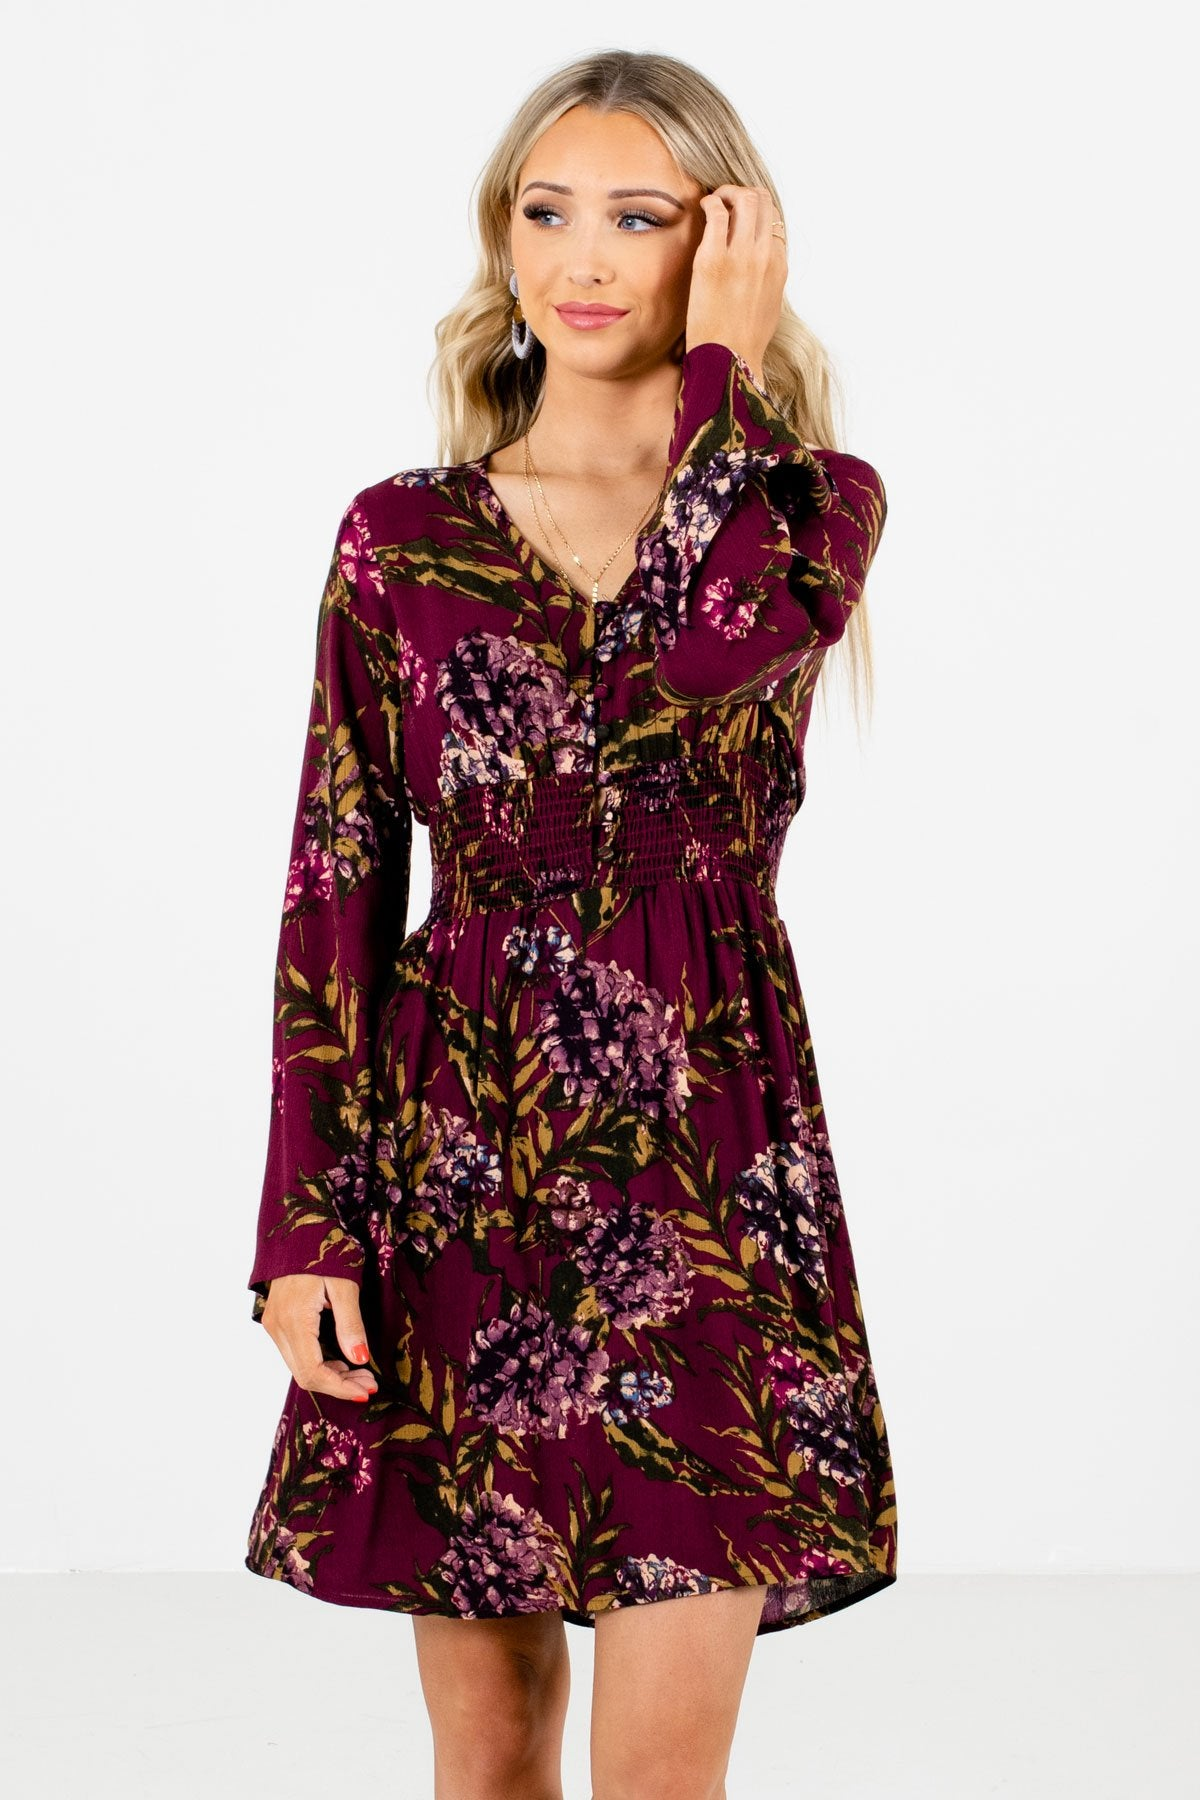 Purple Multicolored Floral Patterned Boutique Mini Dresses for Women